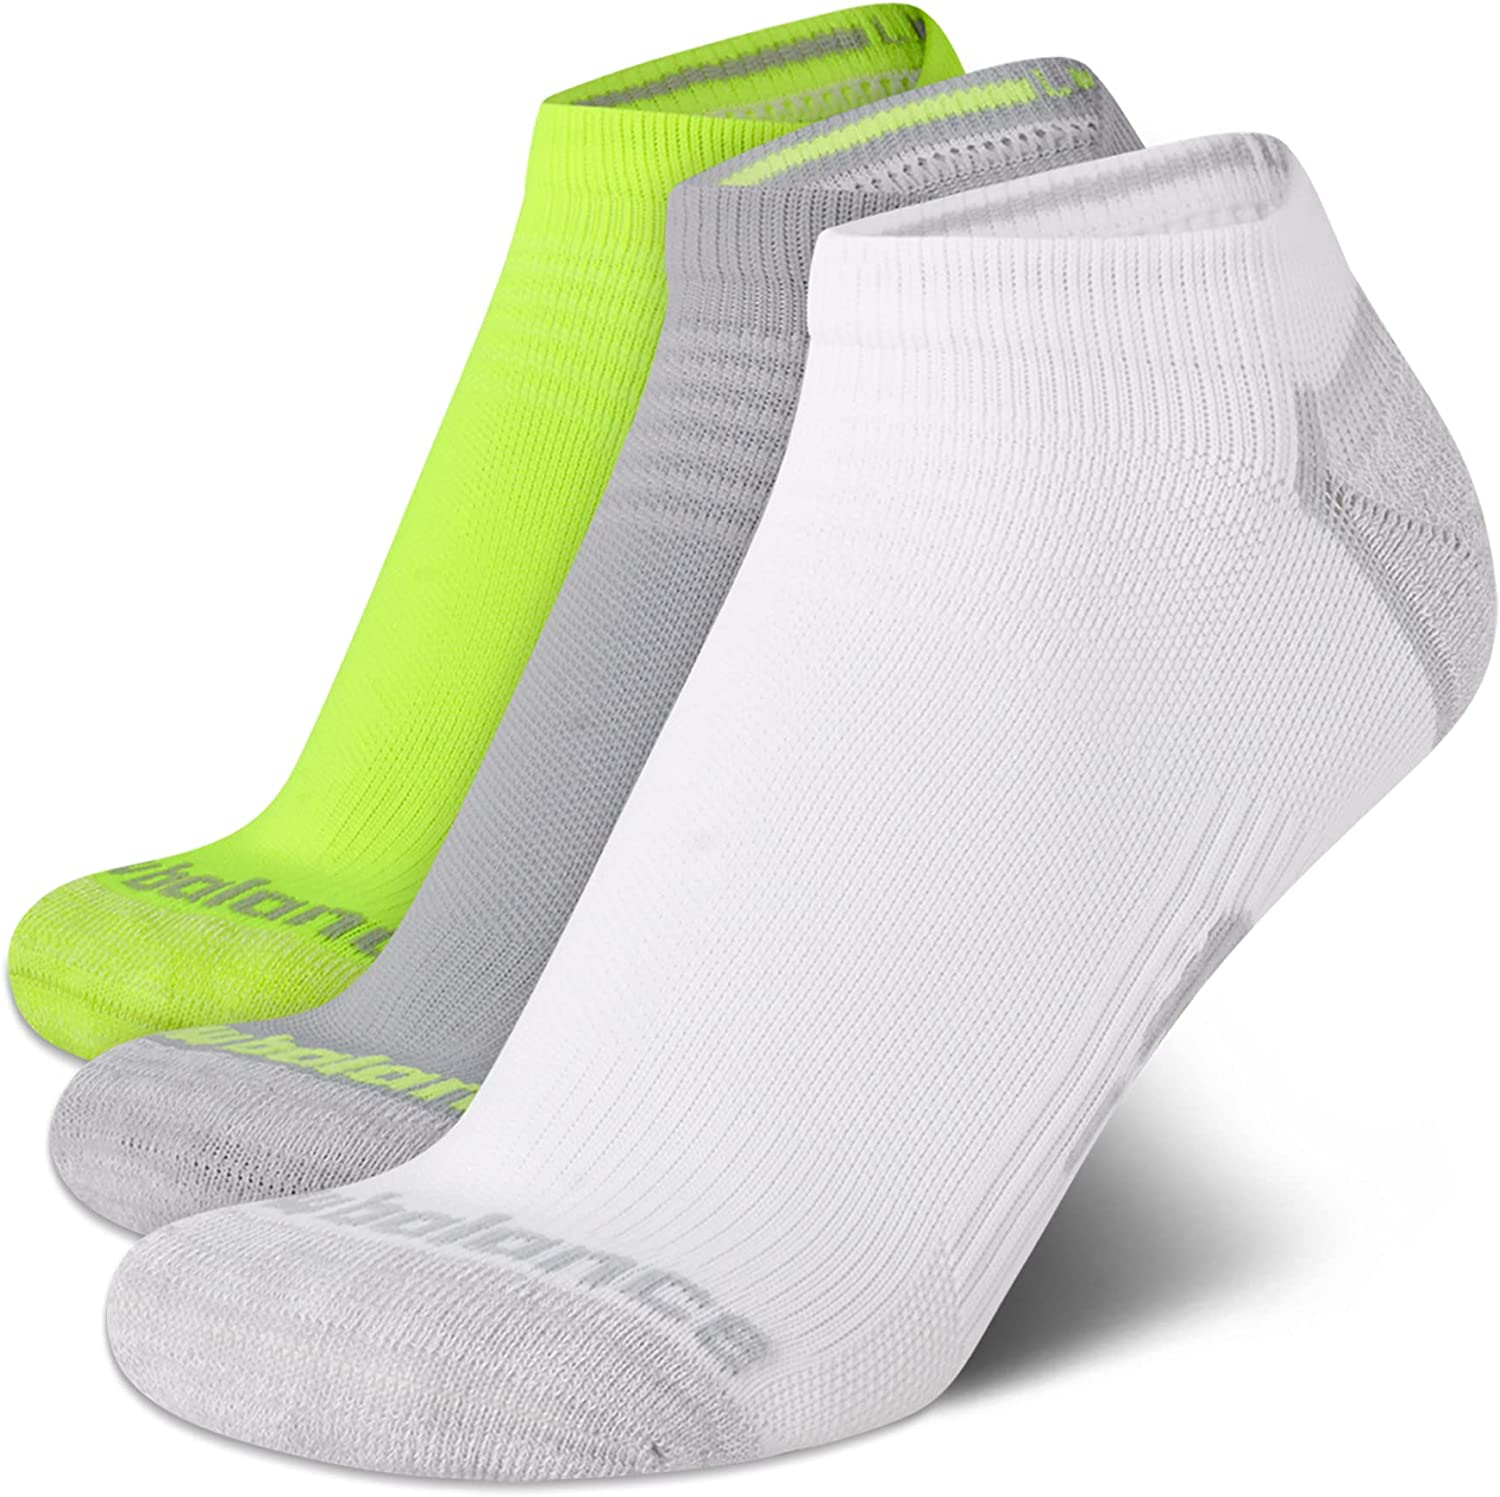 New Balance Women's 3 Pack Cushioned Moisture Wicking No Show Socks with Arch Support